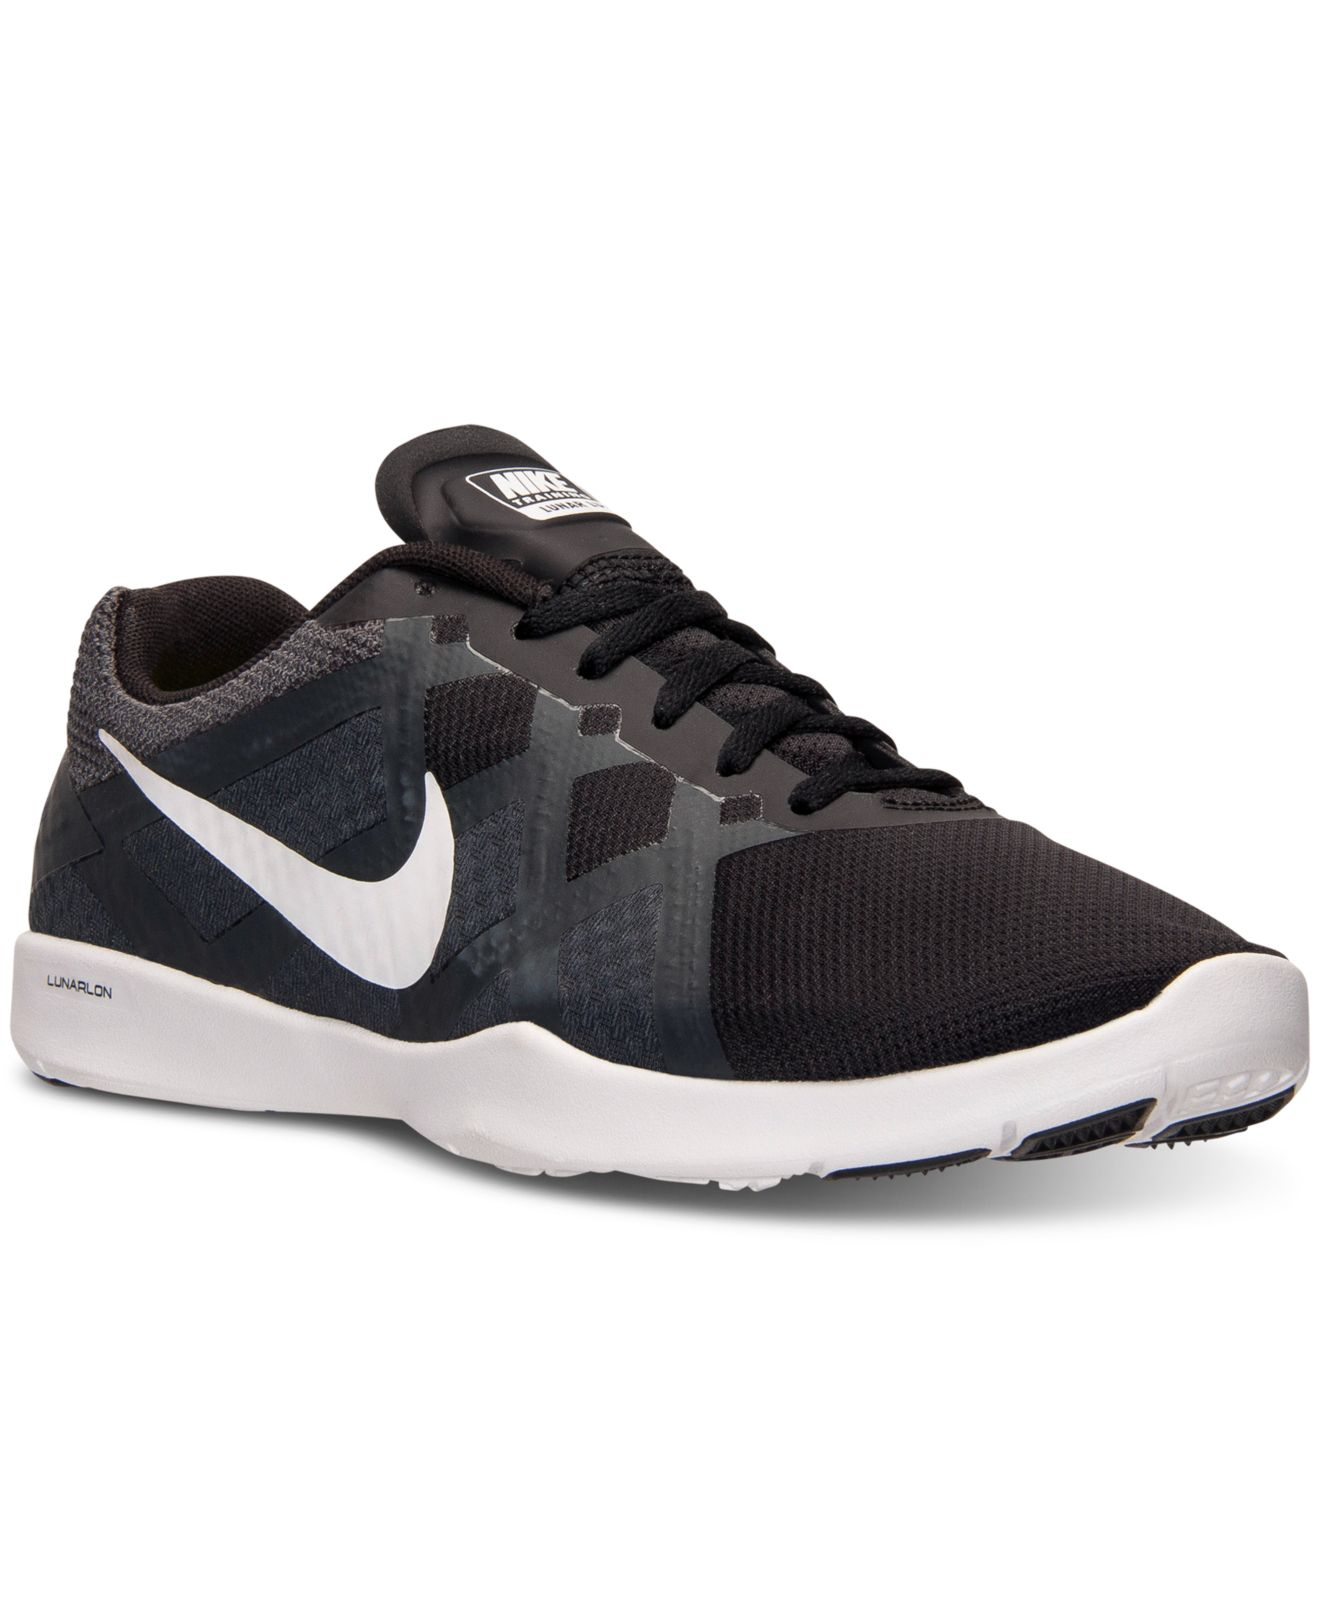 womens cheetah nike finish line. The newest iteration of the Nike Free, the Nike Women's Free finish line cheetah womens nike Run Running Sneaker, features a stretchy, upgraded upper for a dynamic fit and enhanced feel.